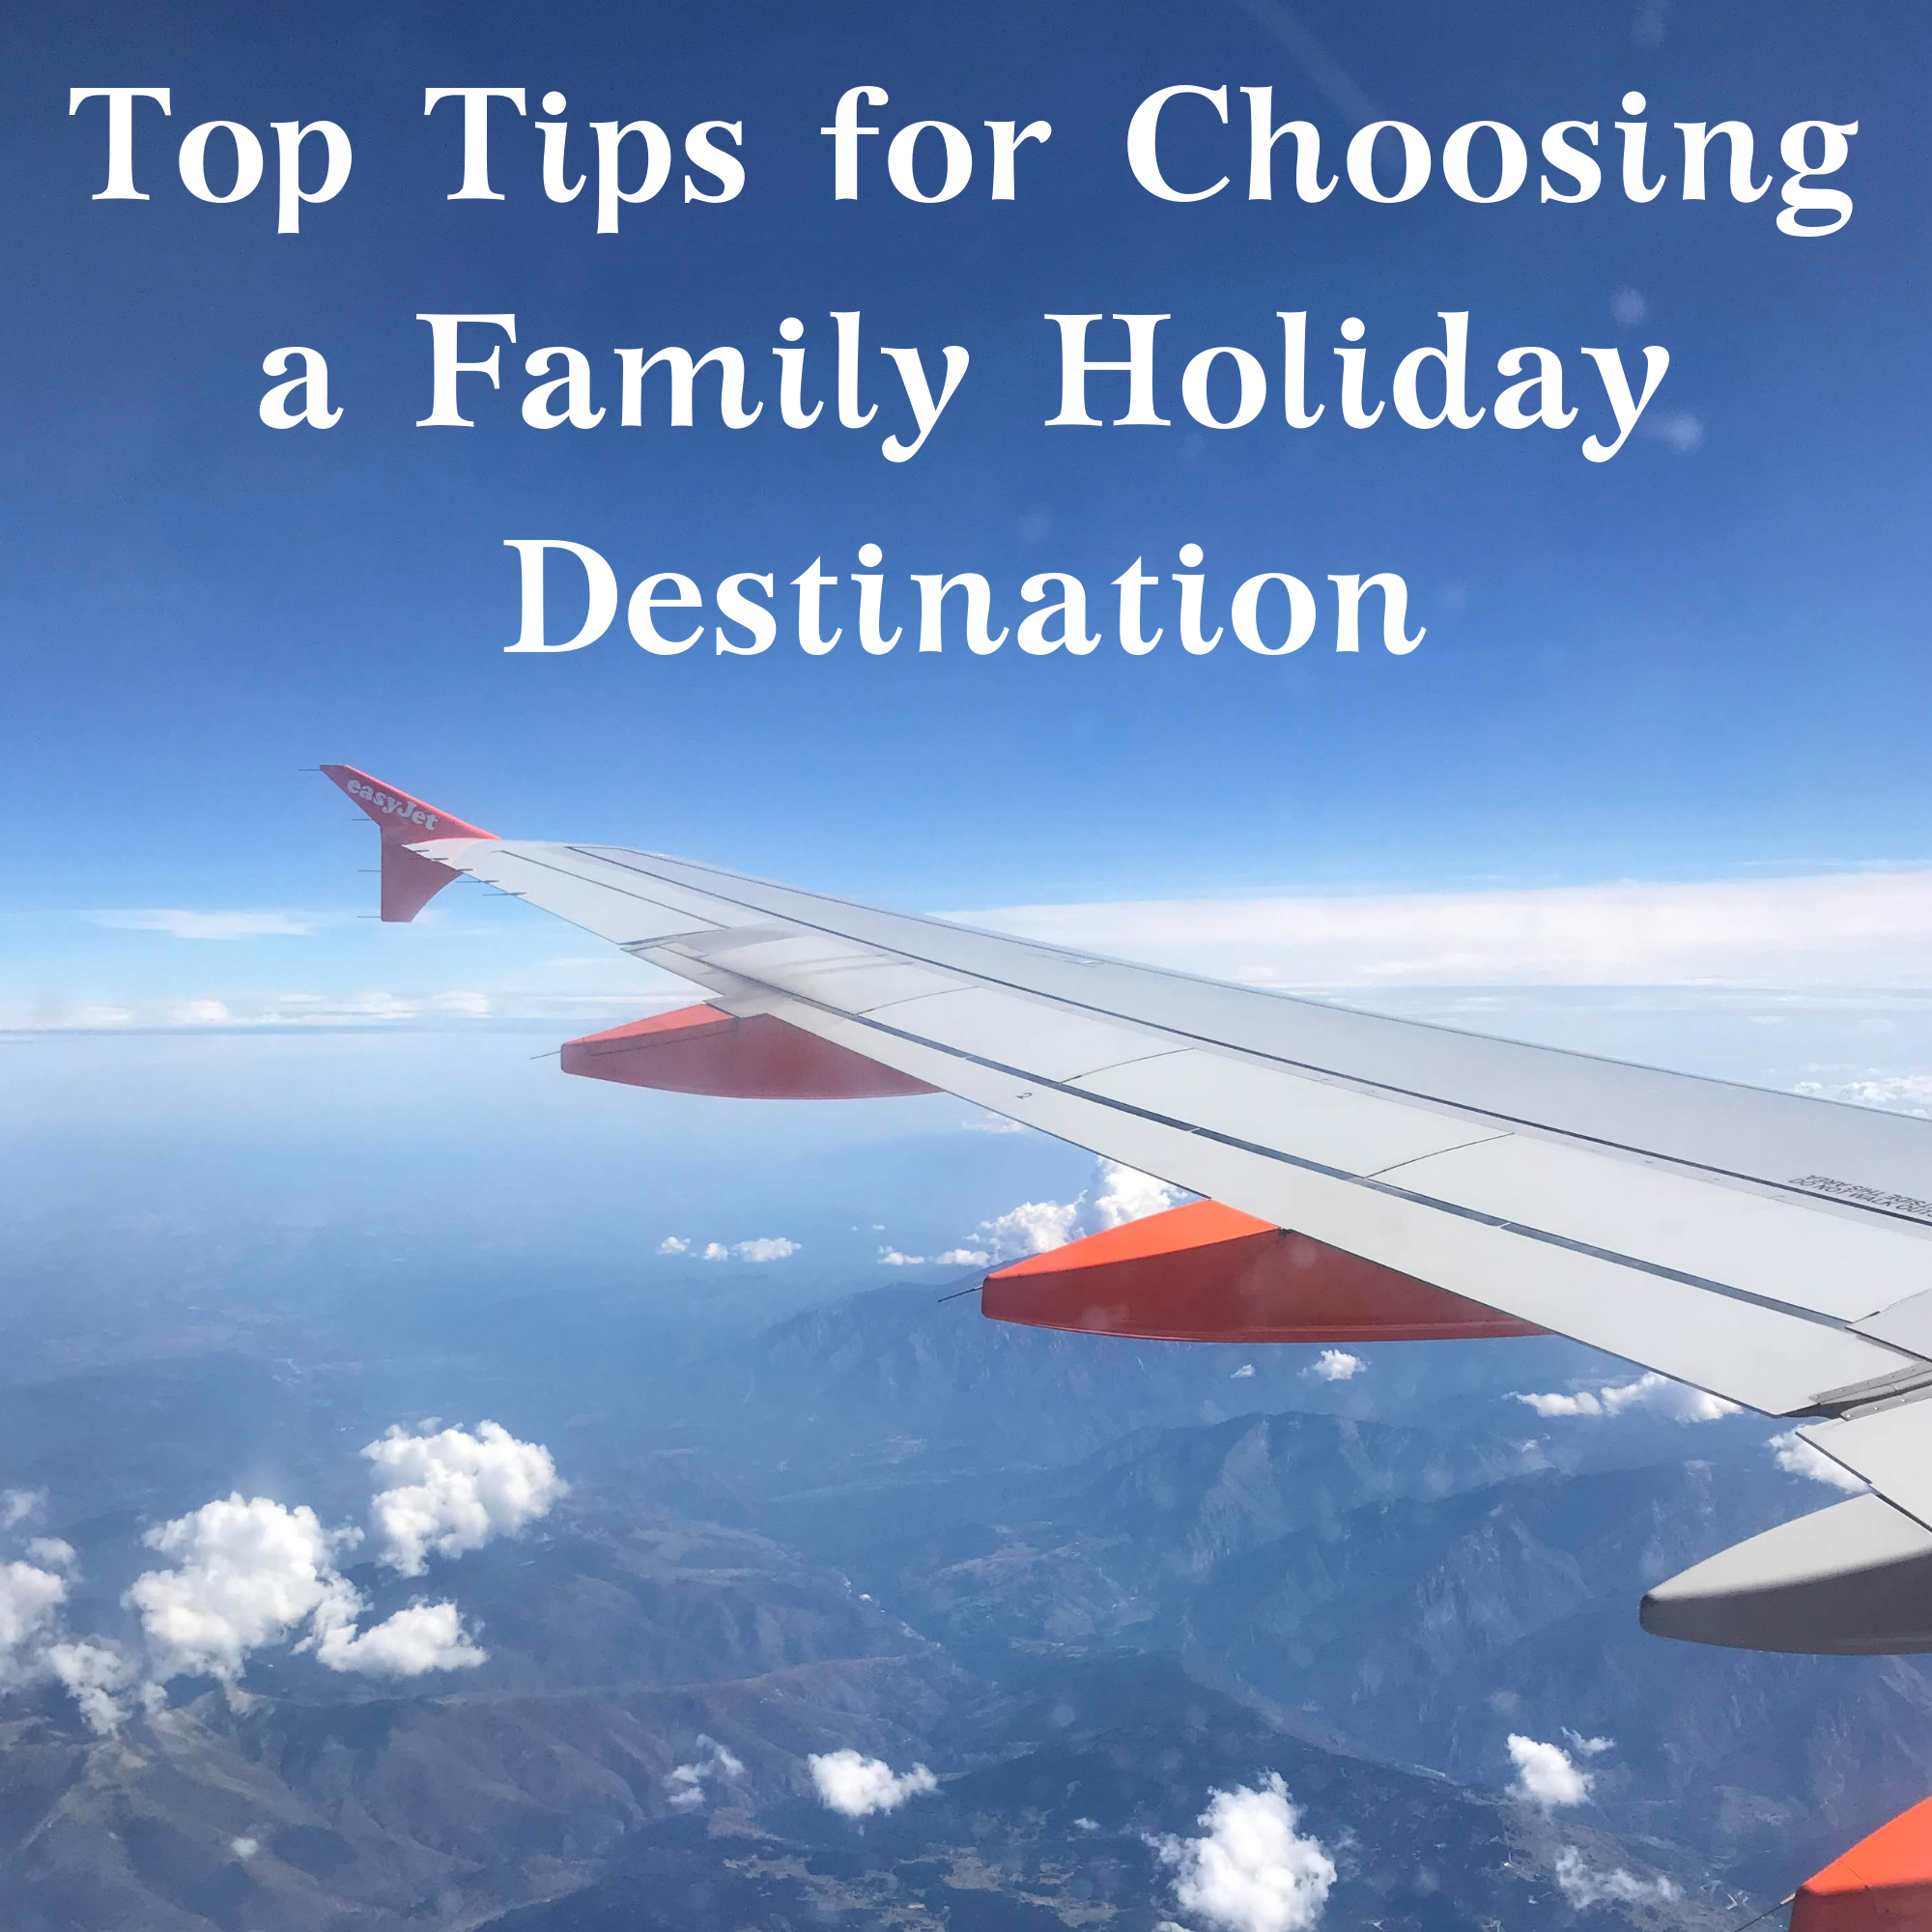 Top Tips for Choosing a Family Holiday Destination